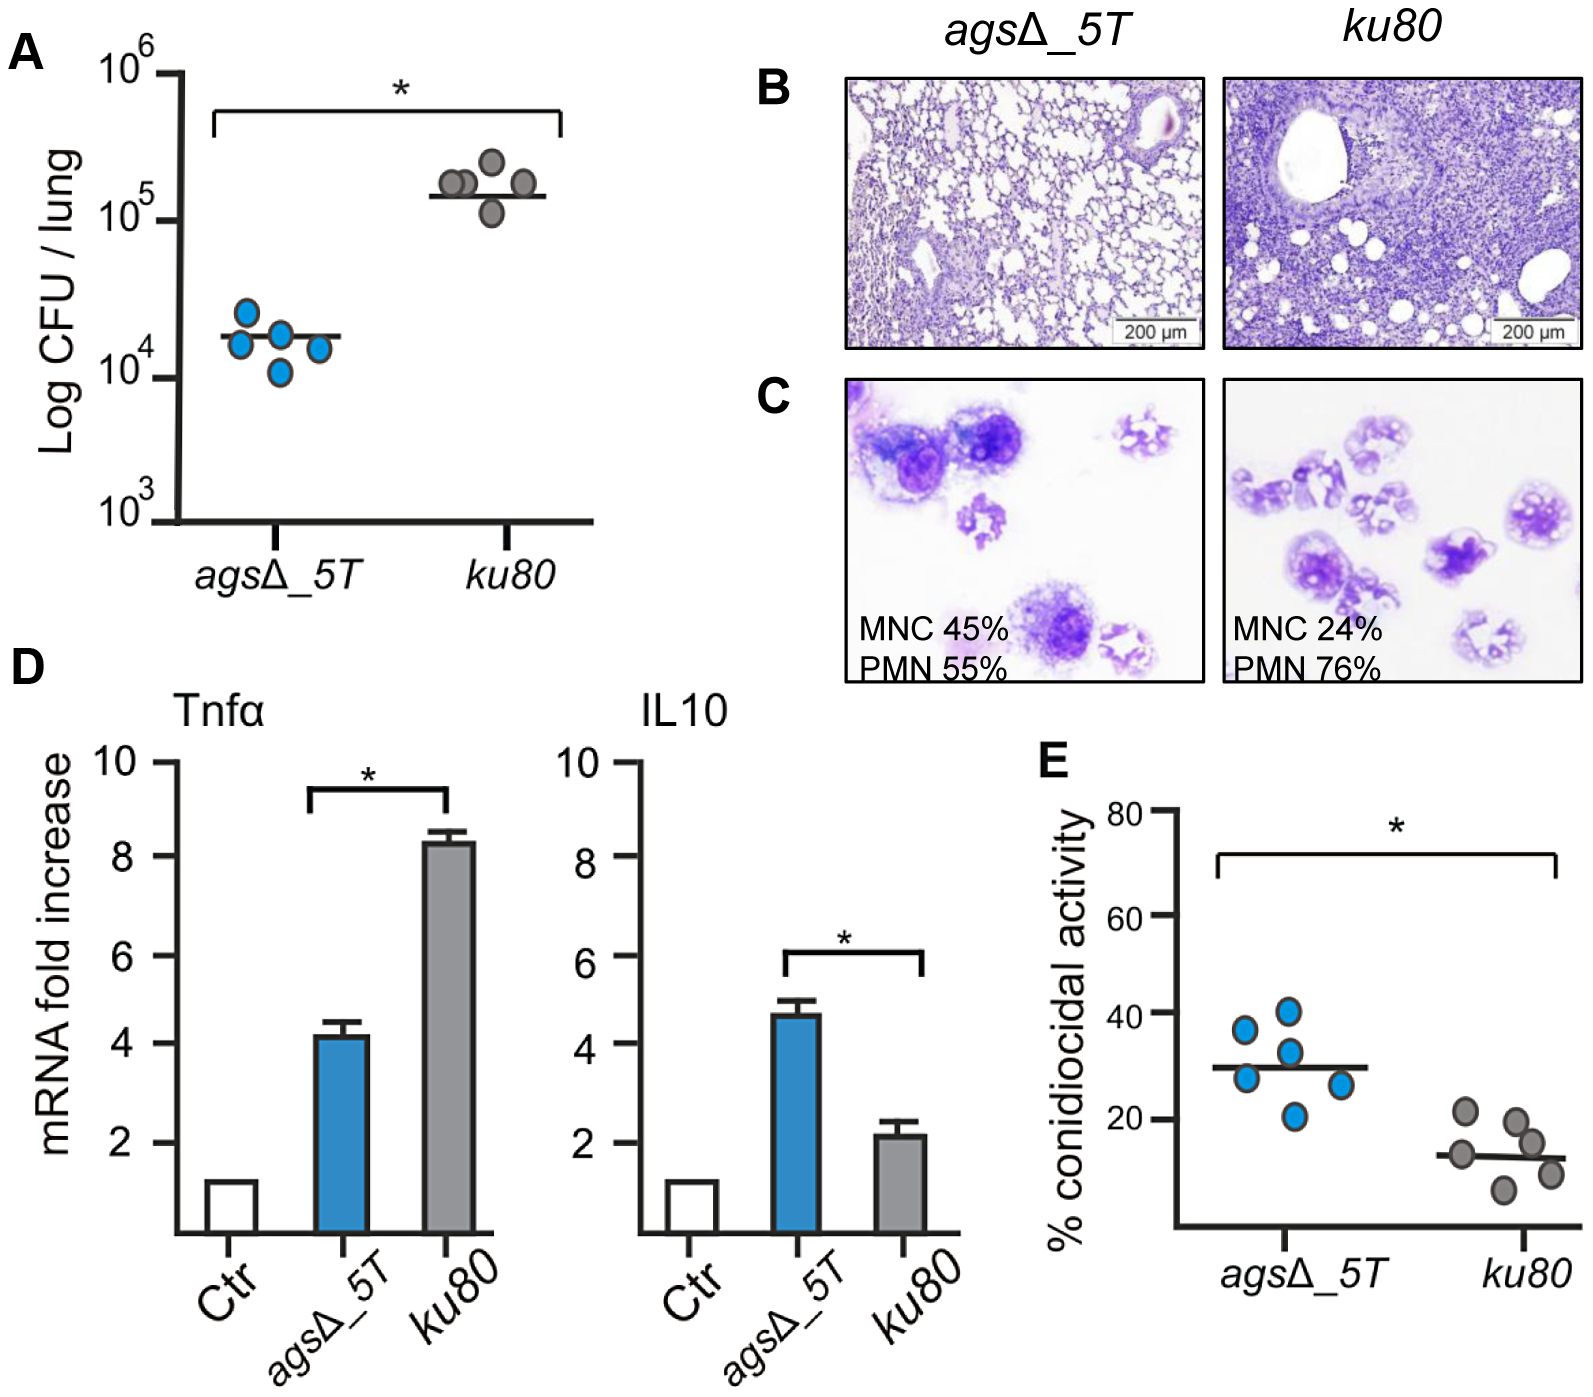 Immunocompetent mice infected with resting conidia of <i>ags</i>Δ_<i>5T</i> and parental (<i>ku80</i>) strains.